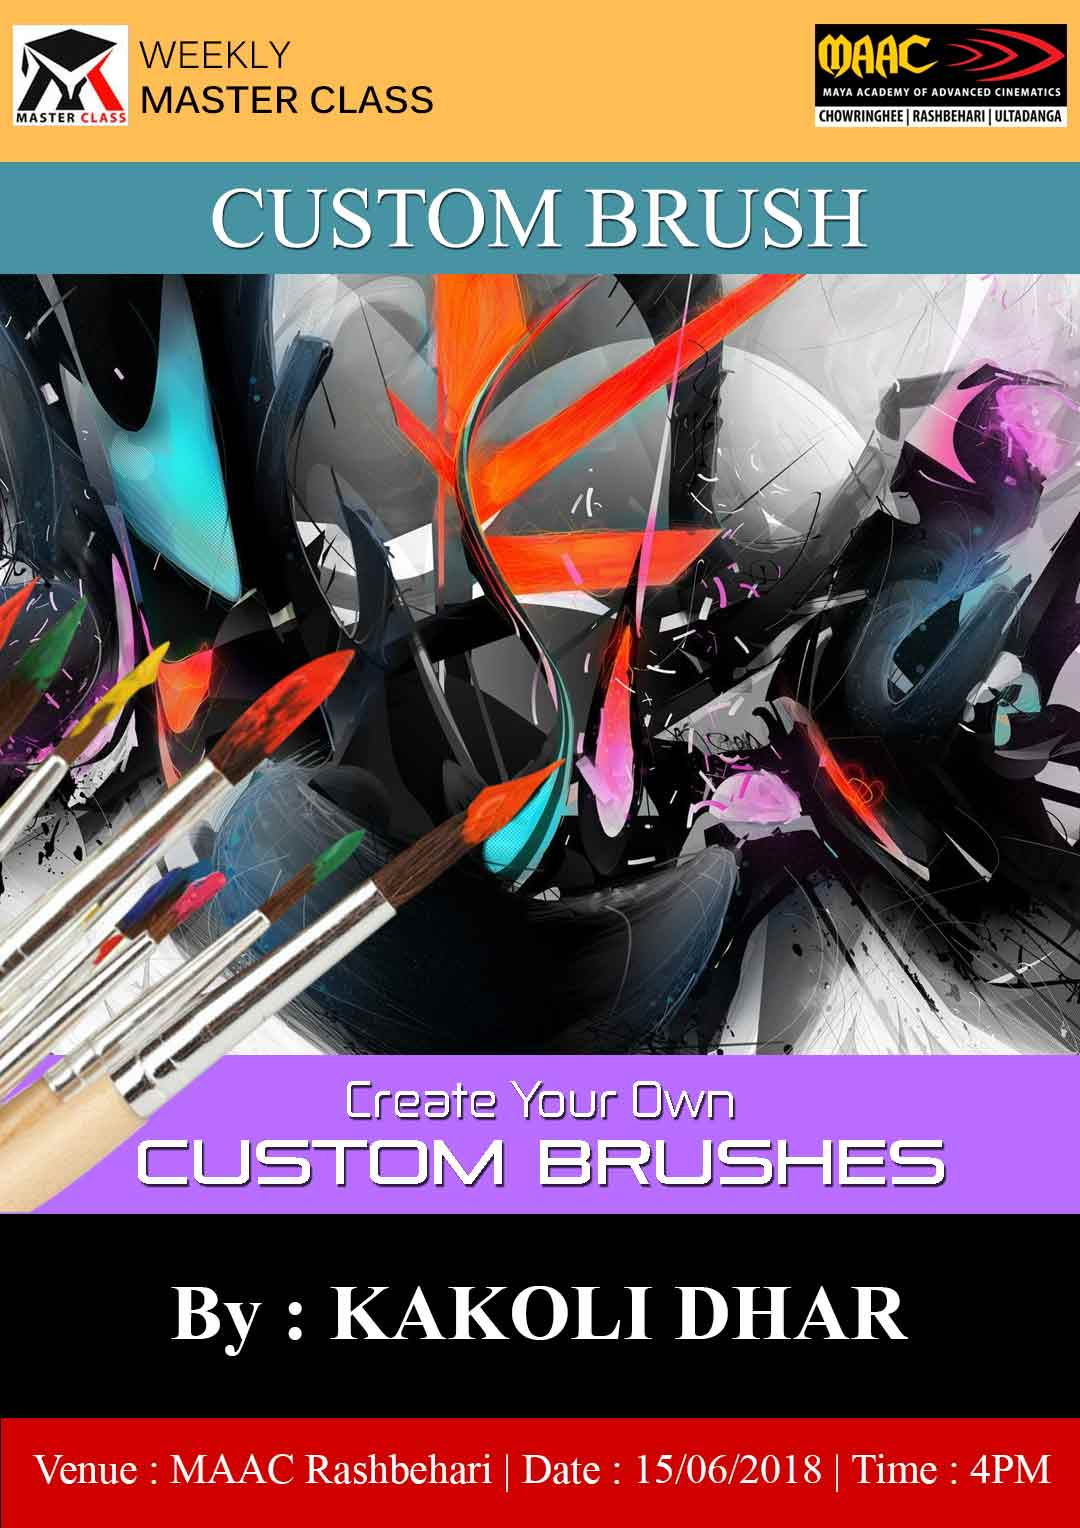 Weekly Master Class on Create Tour Own Custom Brushes